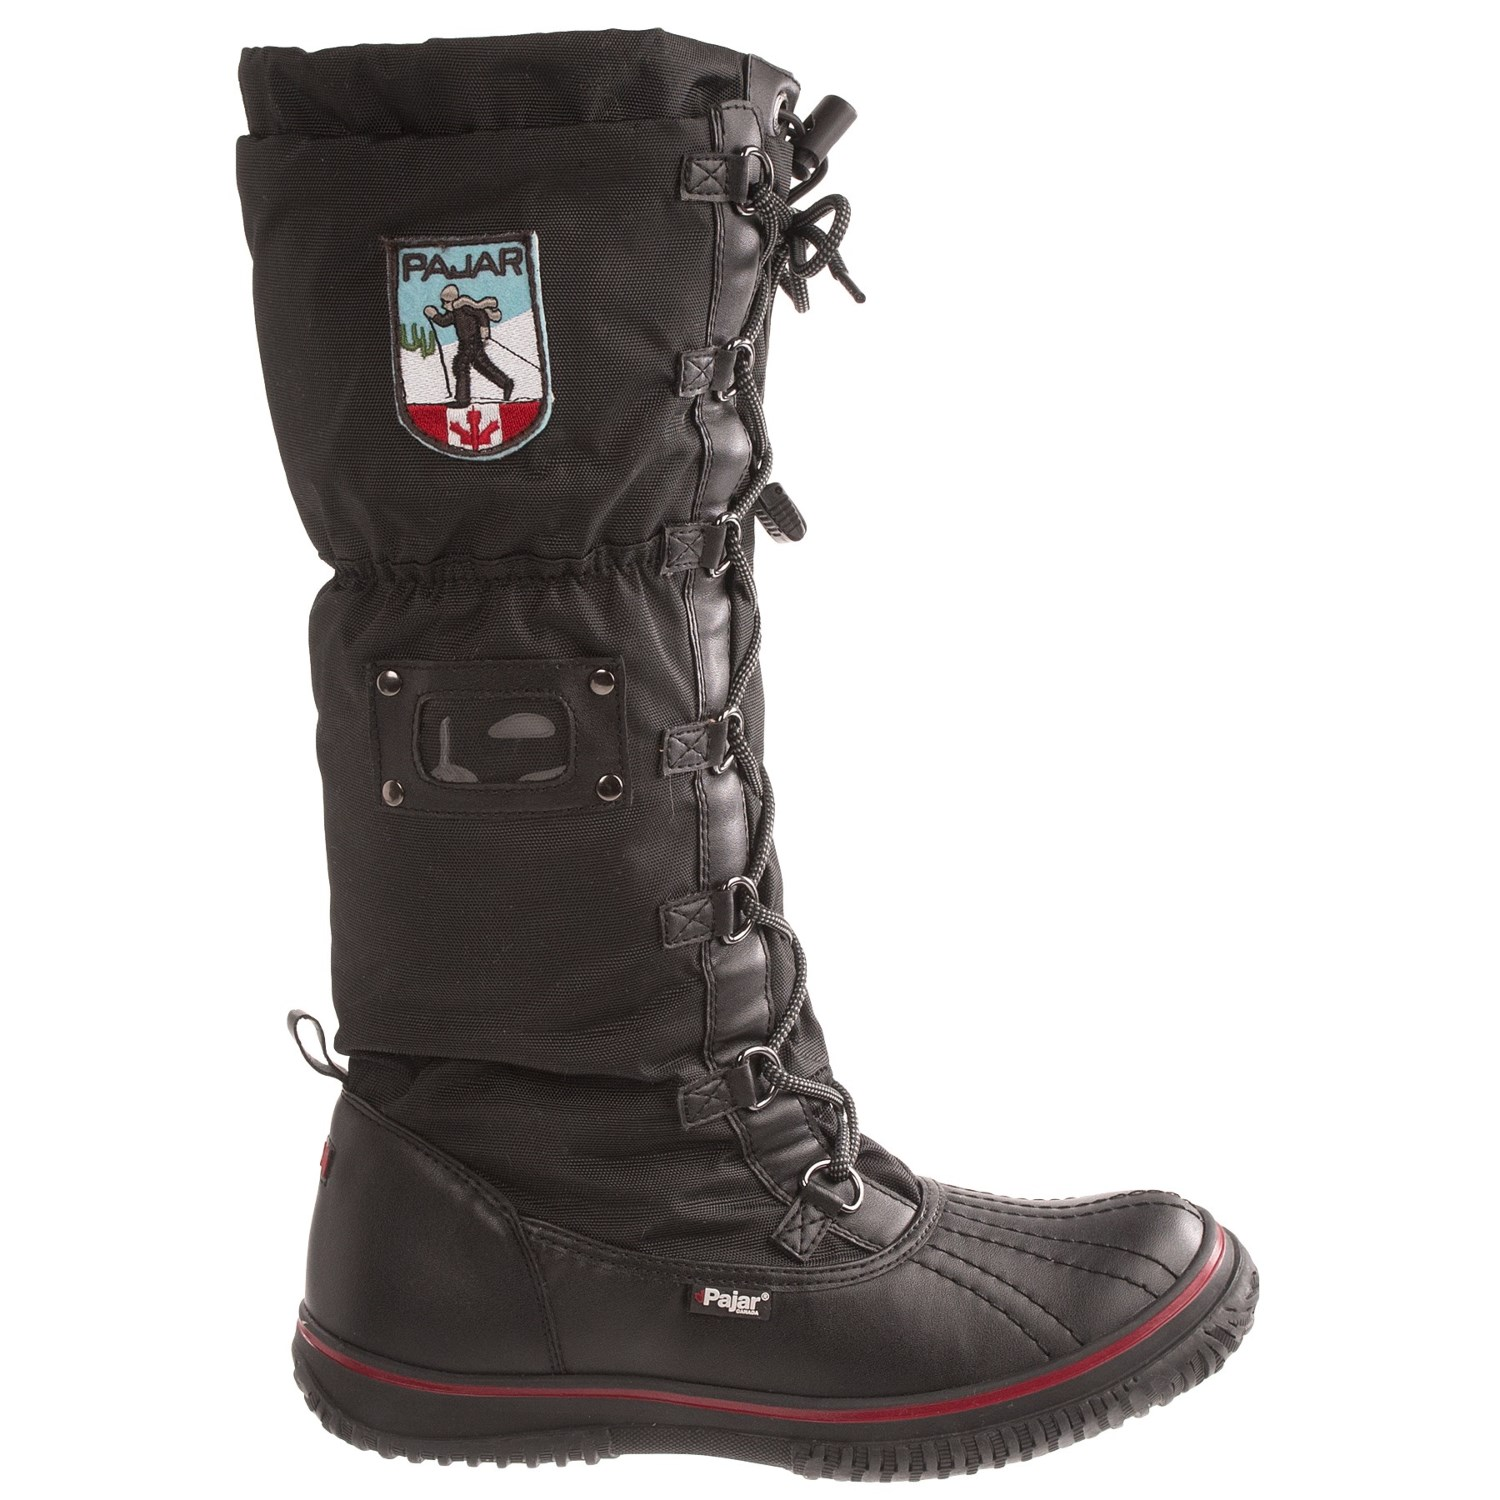 Clearance Snow Boots - Cr Boot